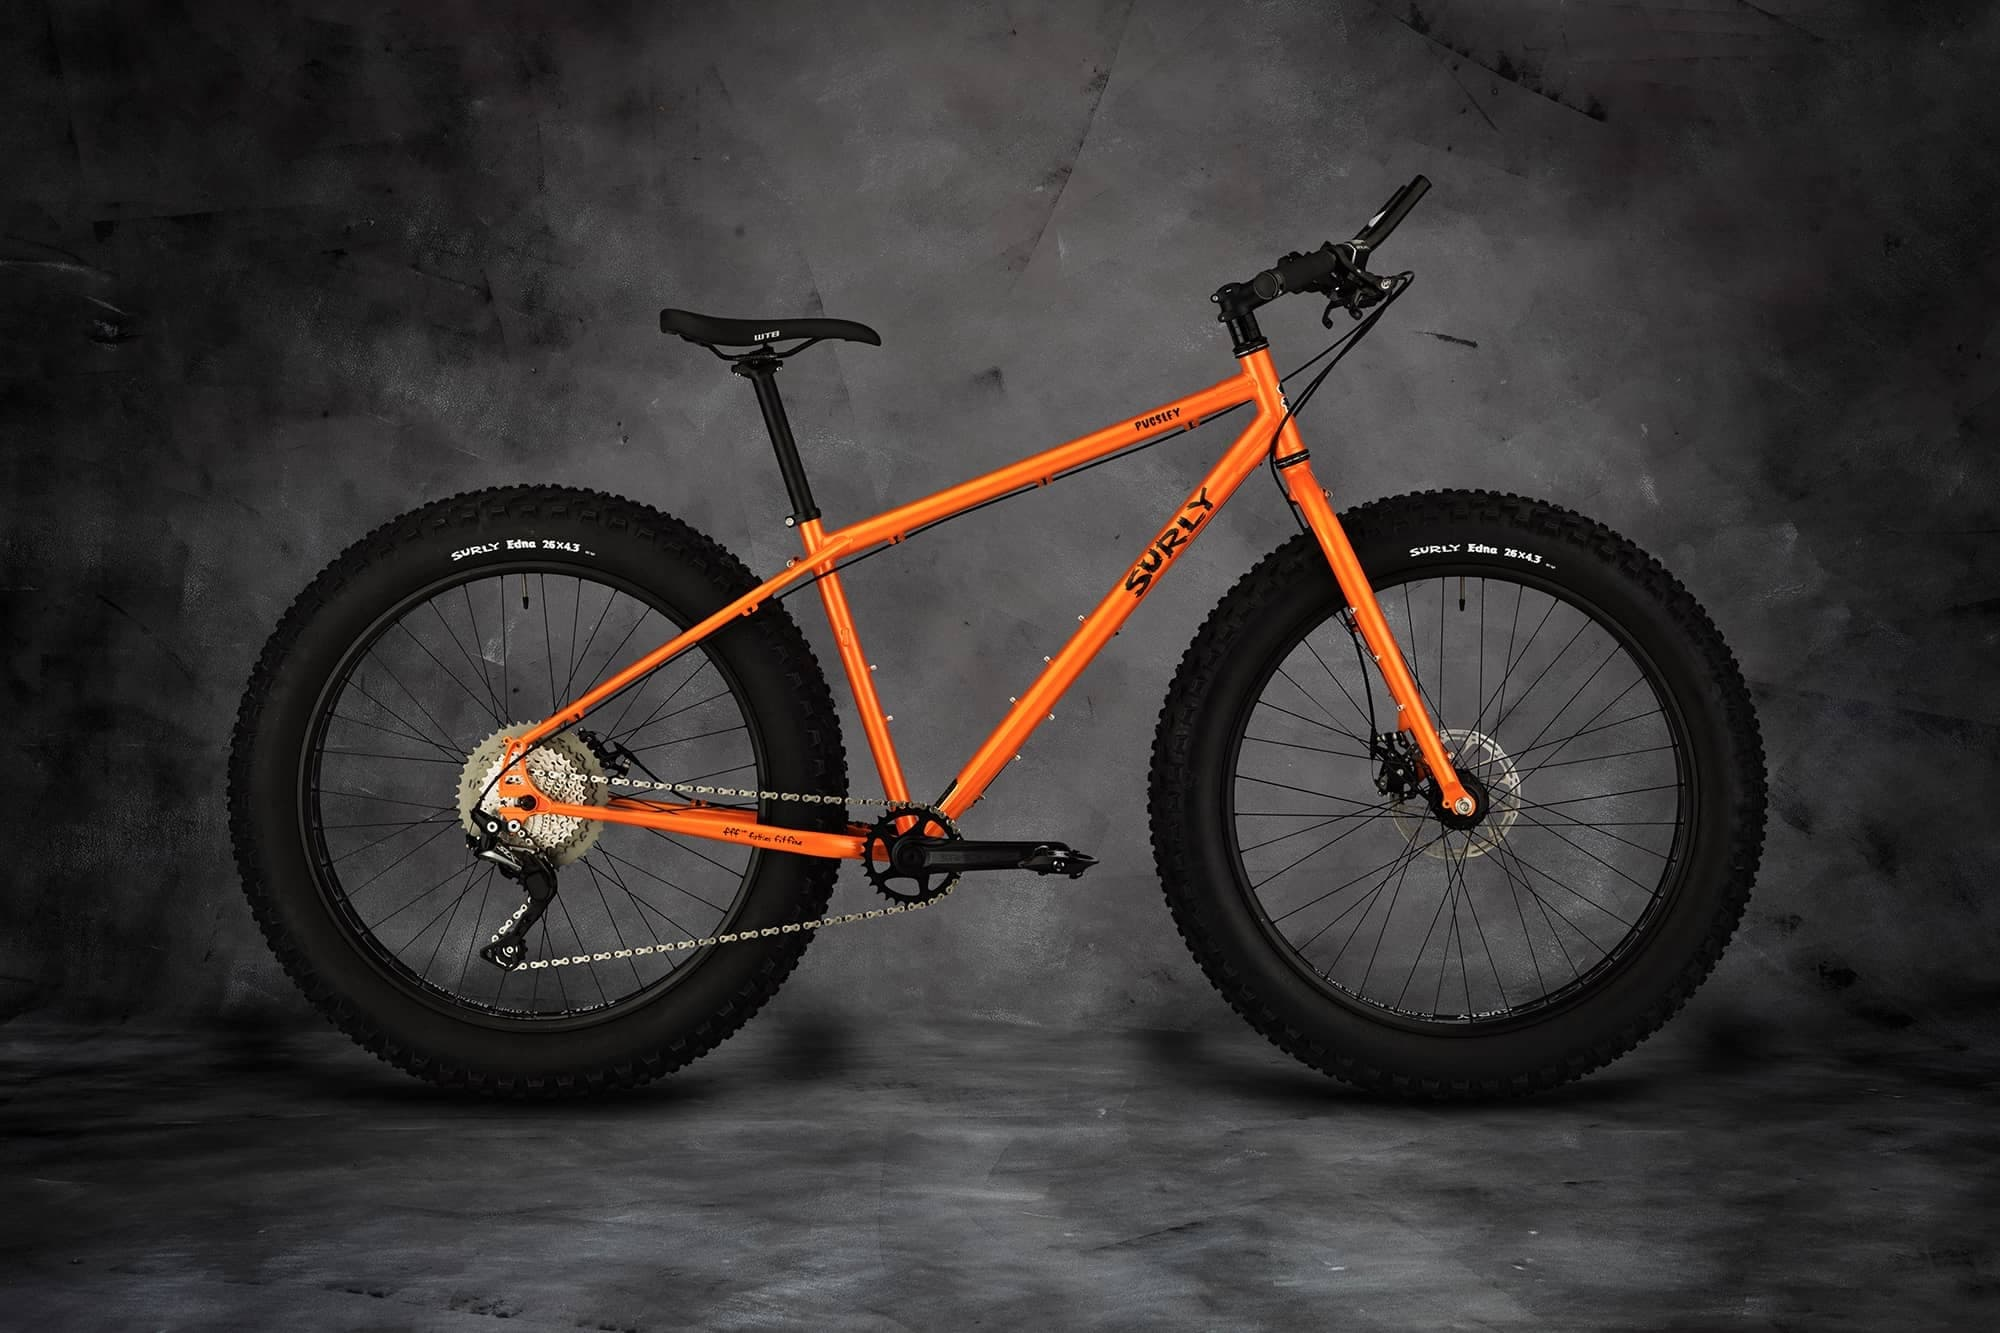 Surly Fat Tire Image